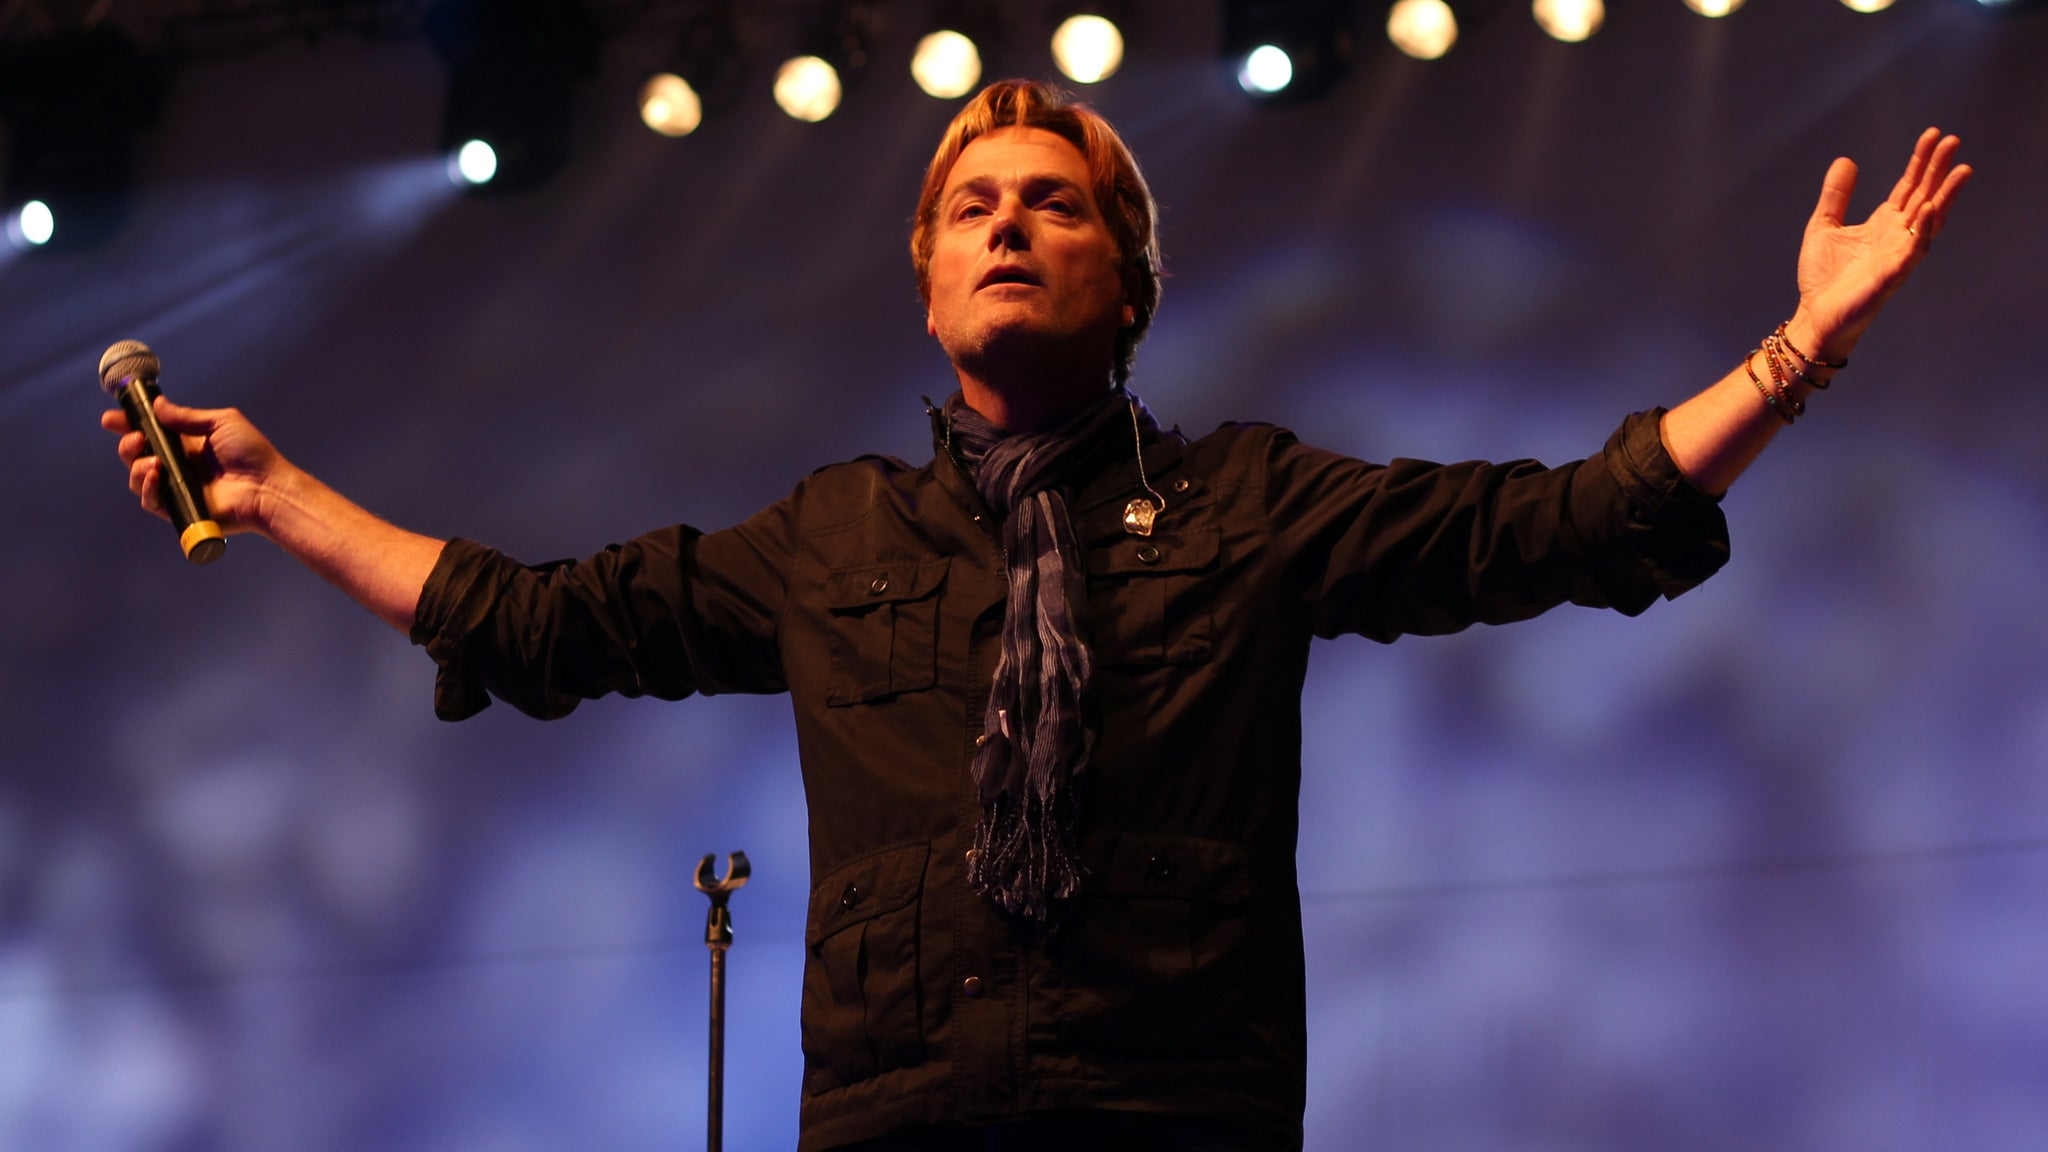 Michael W. Smith at Adler Theatre